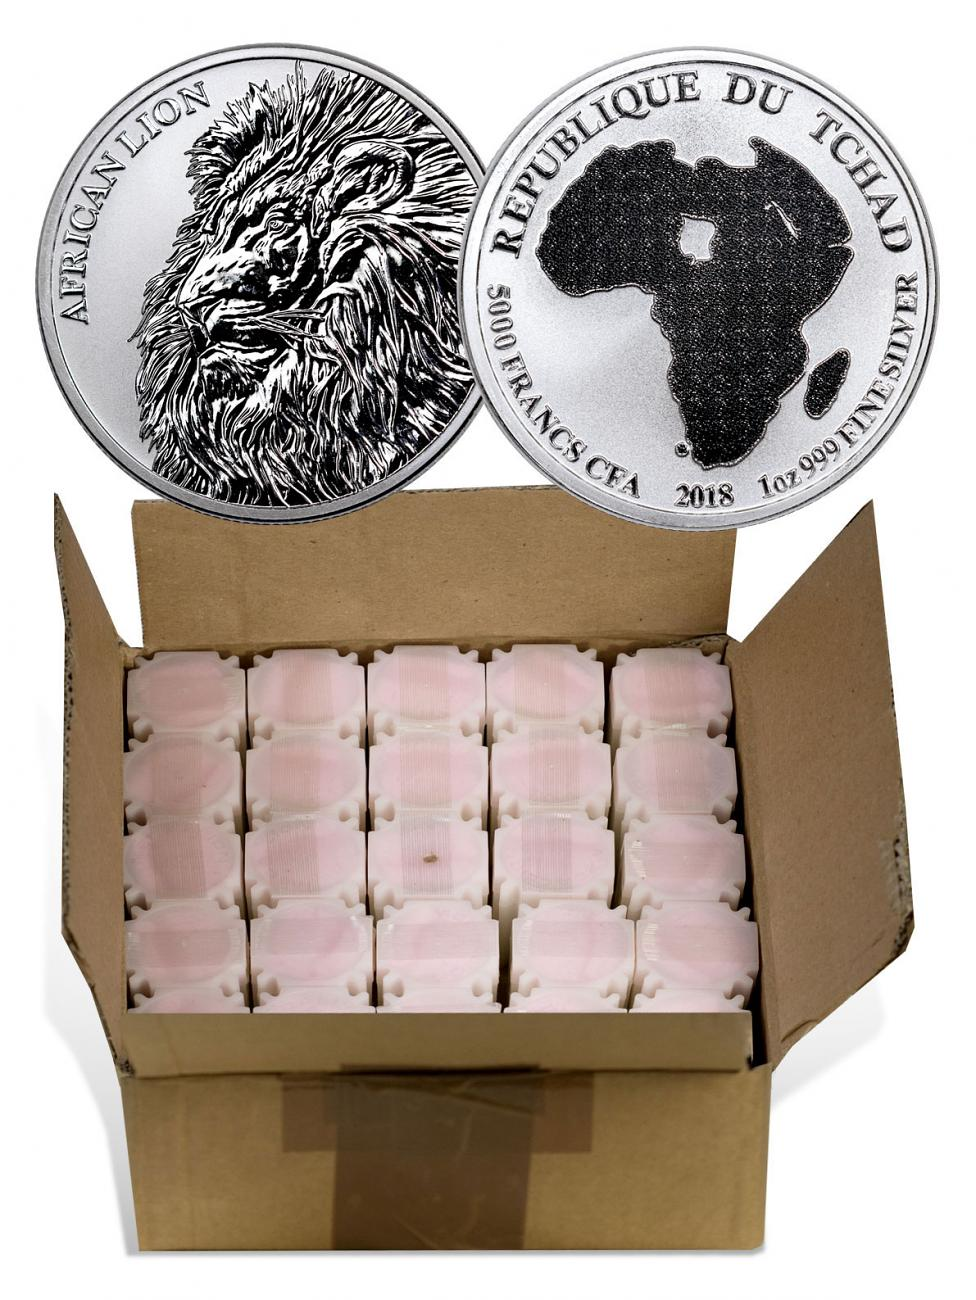 Monster Box of 500 - 2018 Republic of Chad African Lion 1 oz Silver Fr5,000 Coins GEM BU